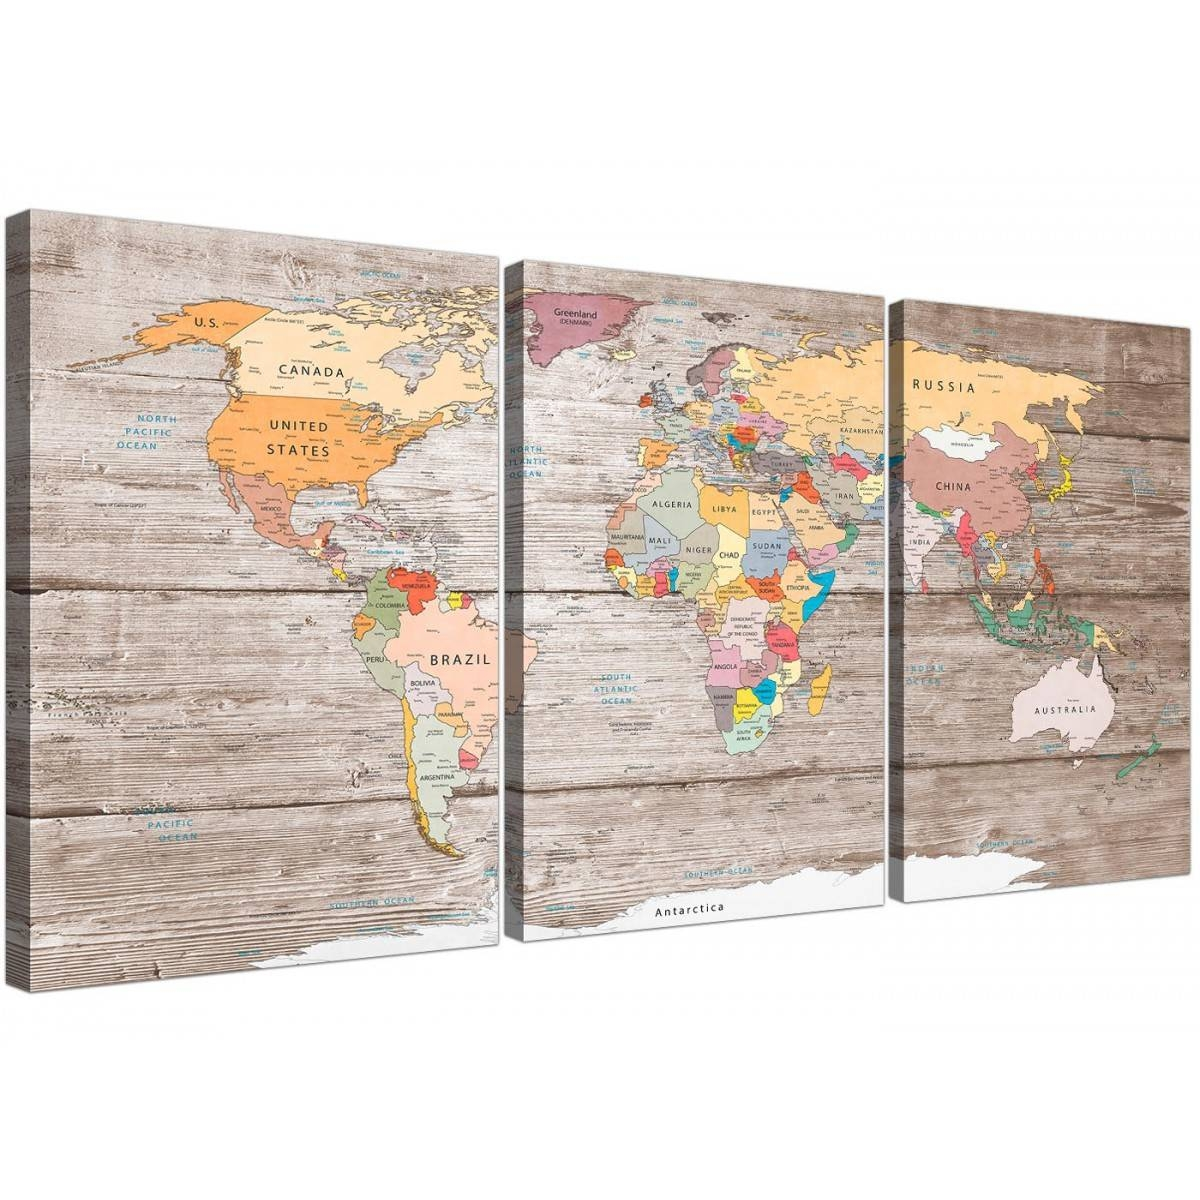 Large Decorative Map Of World Atlas Canvas Wall Art Print  Multi 3 Within Latest Atlas Wall Art (View 9 of 20)